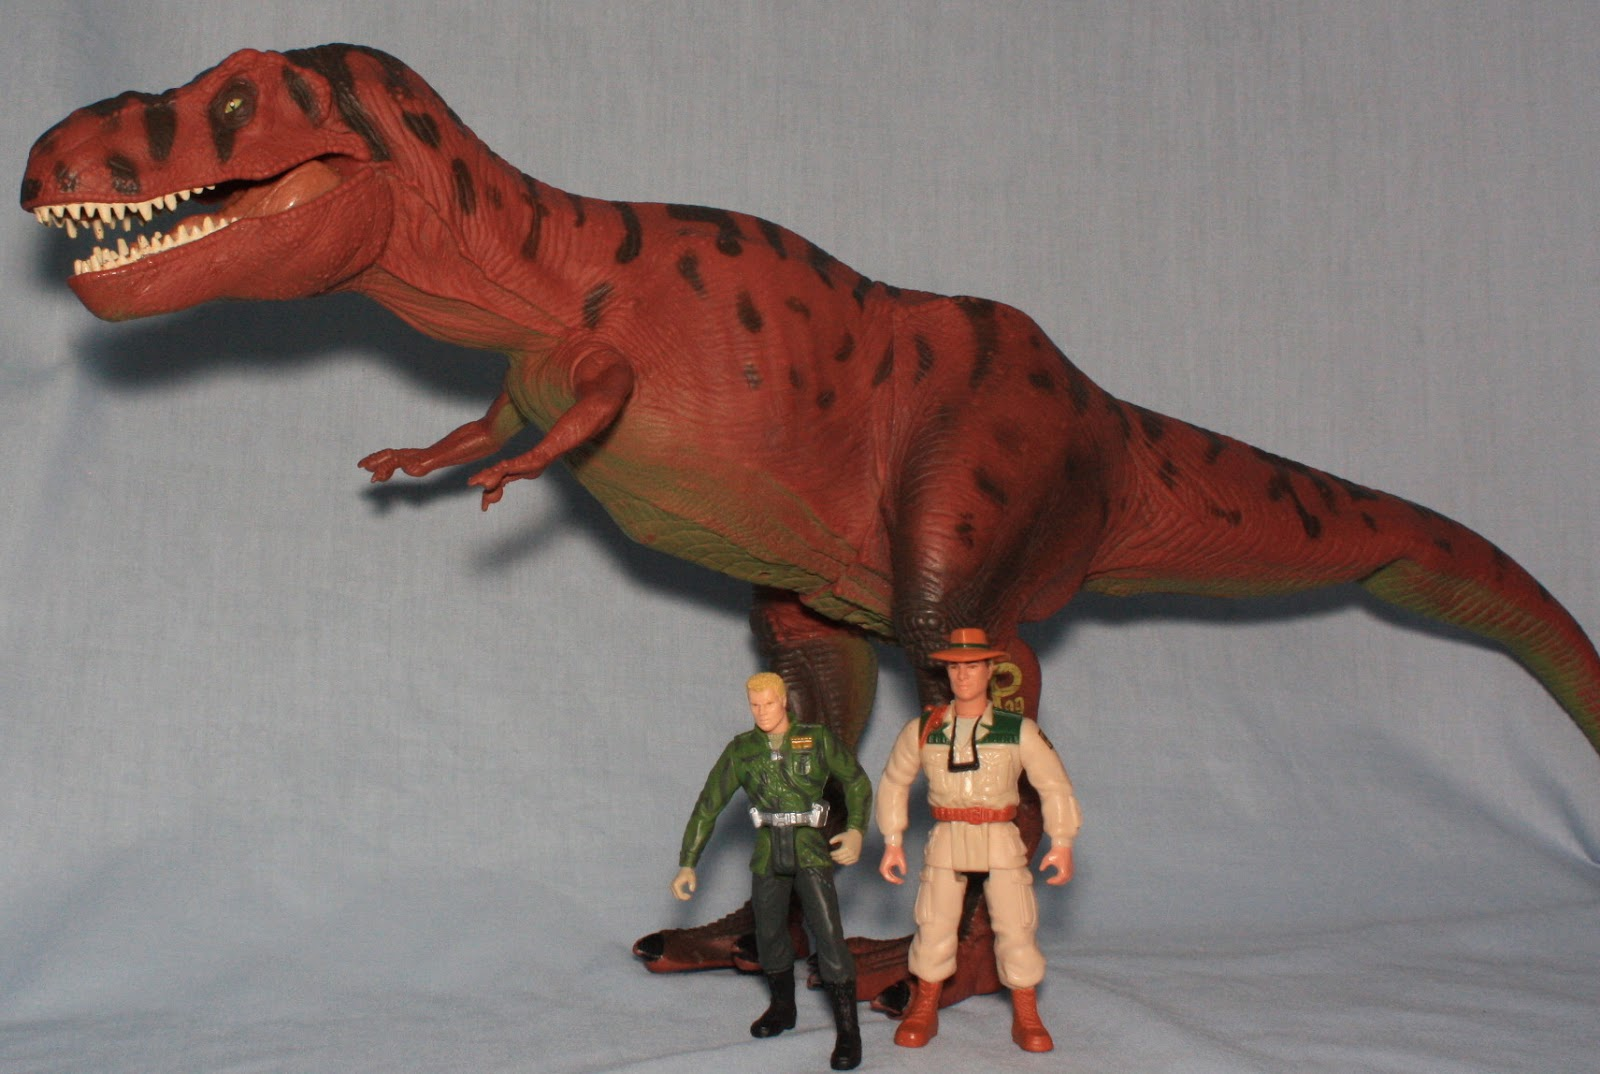 Jurassic Park Toys T Rex : The plastic eyeball a toy life uh finds way